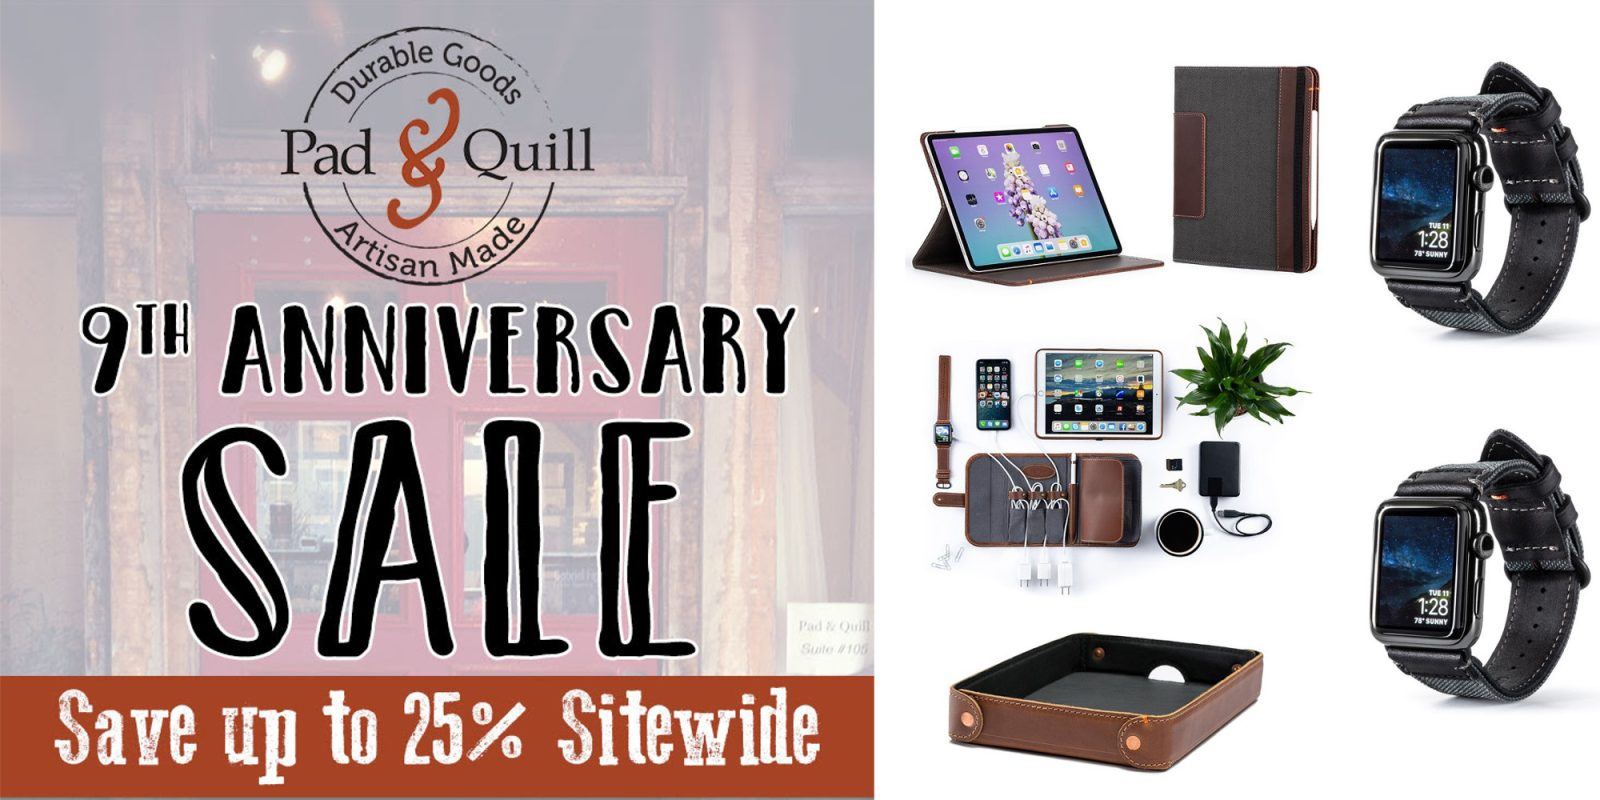 Pad & Quill sitewide sale up to 45% off: Watch bands, iPad cases, much more